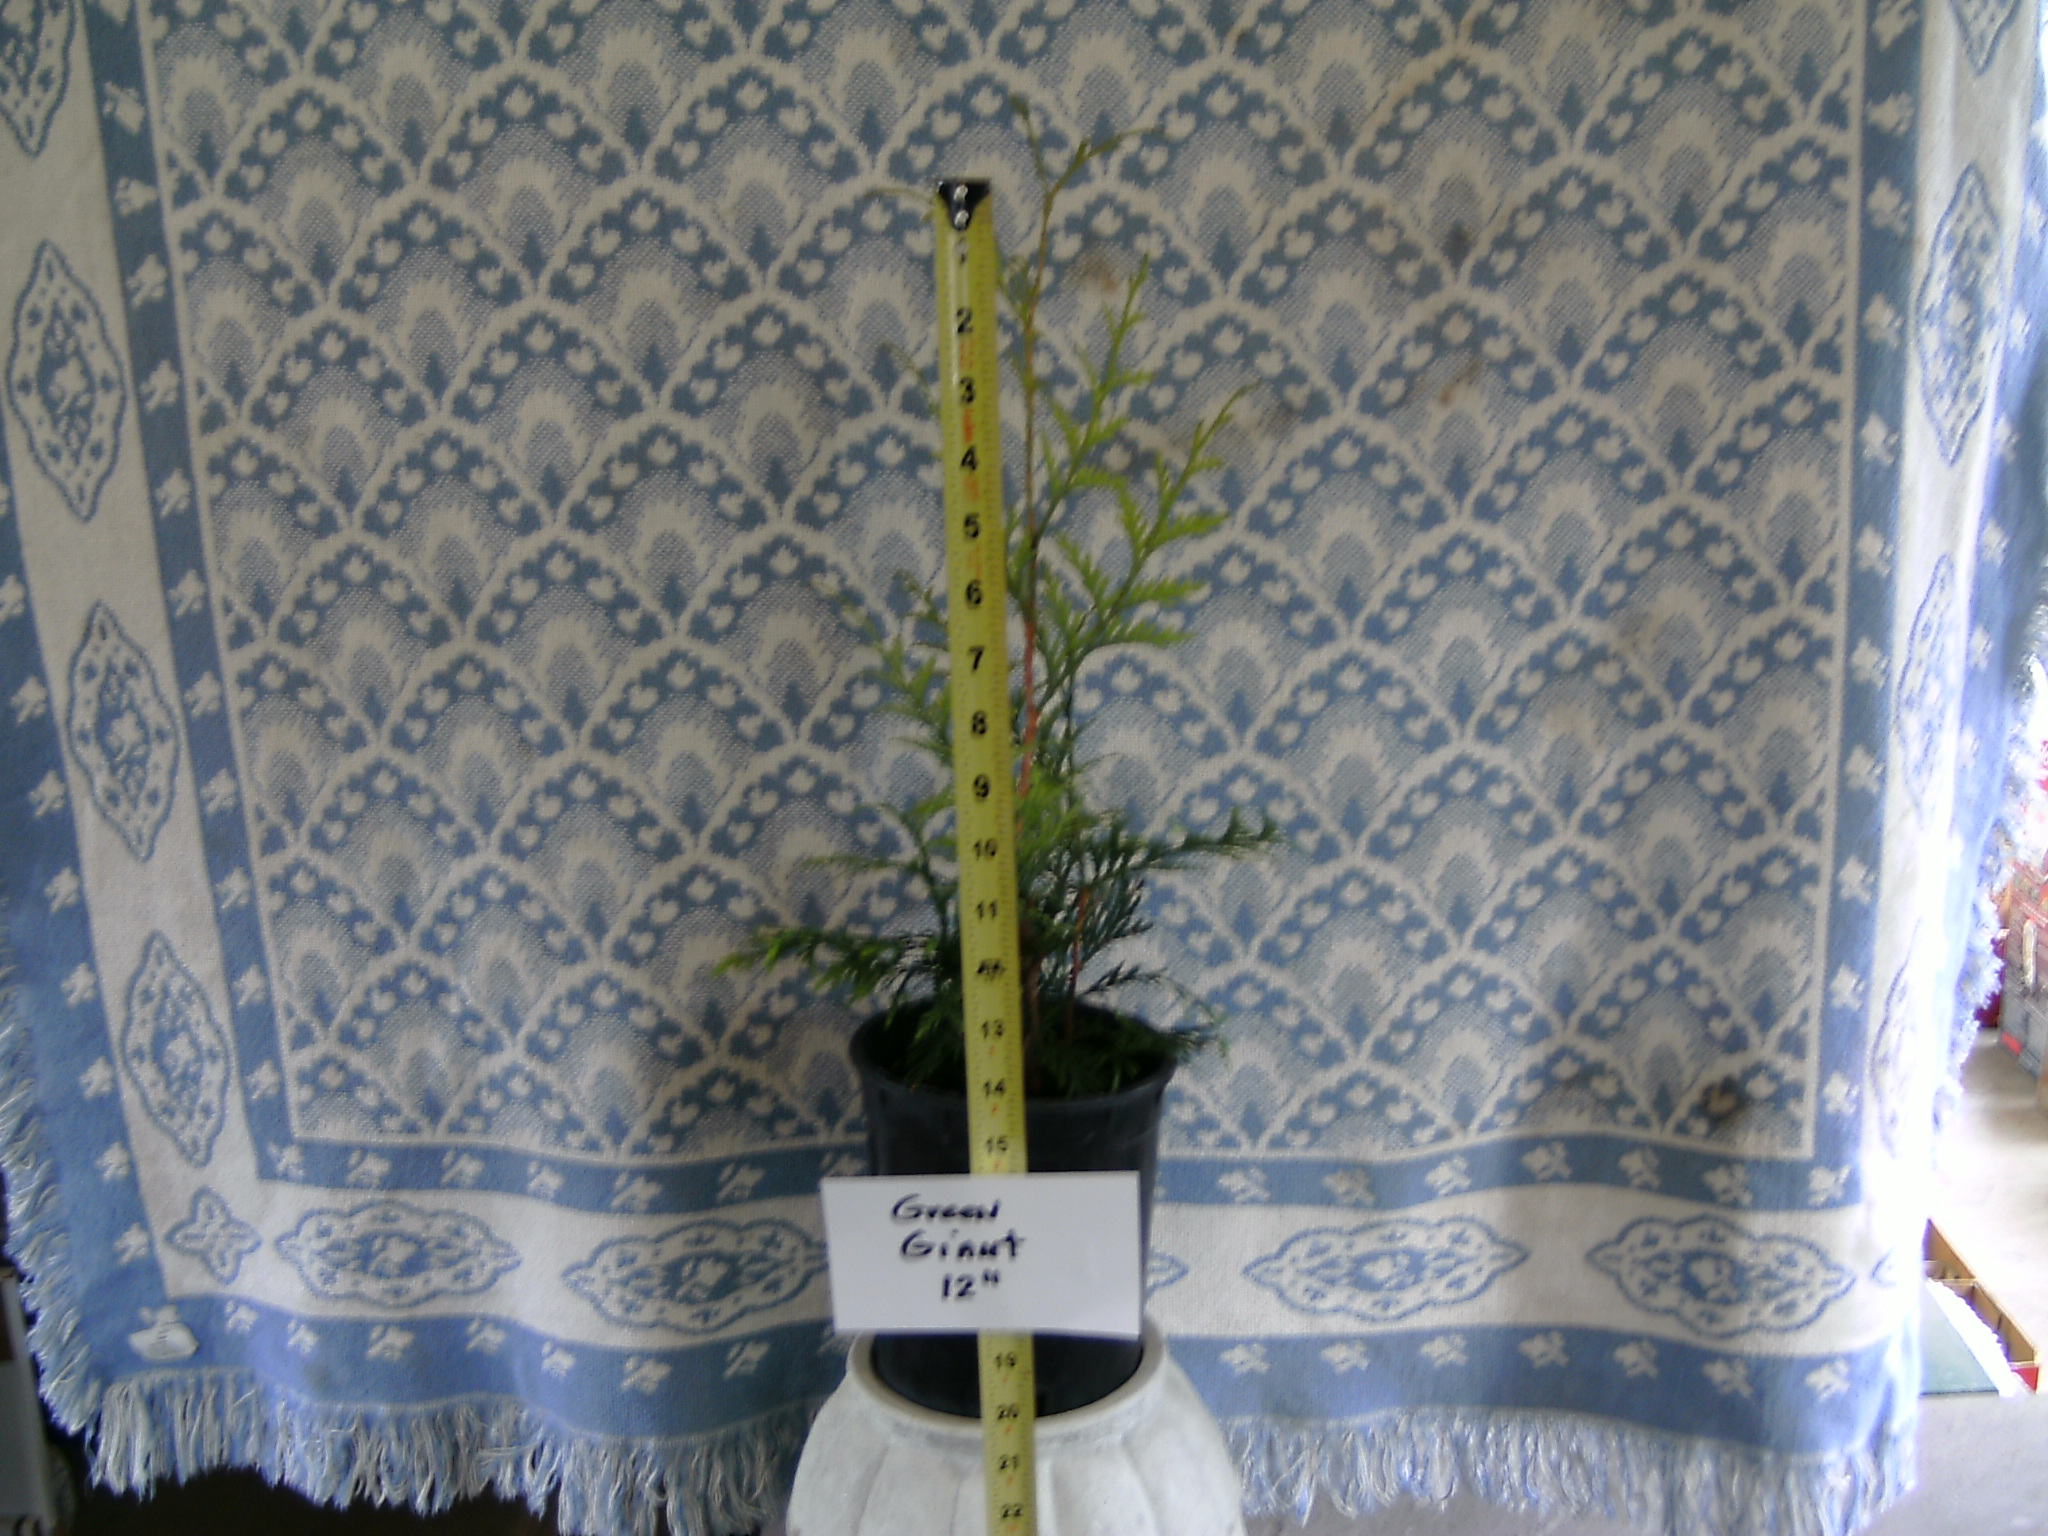 Our 12 inch tall Green Giant Arborvitae Liner